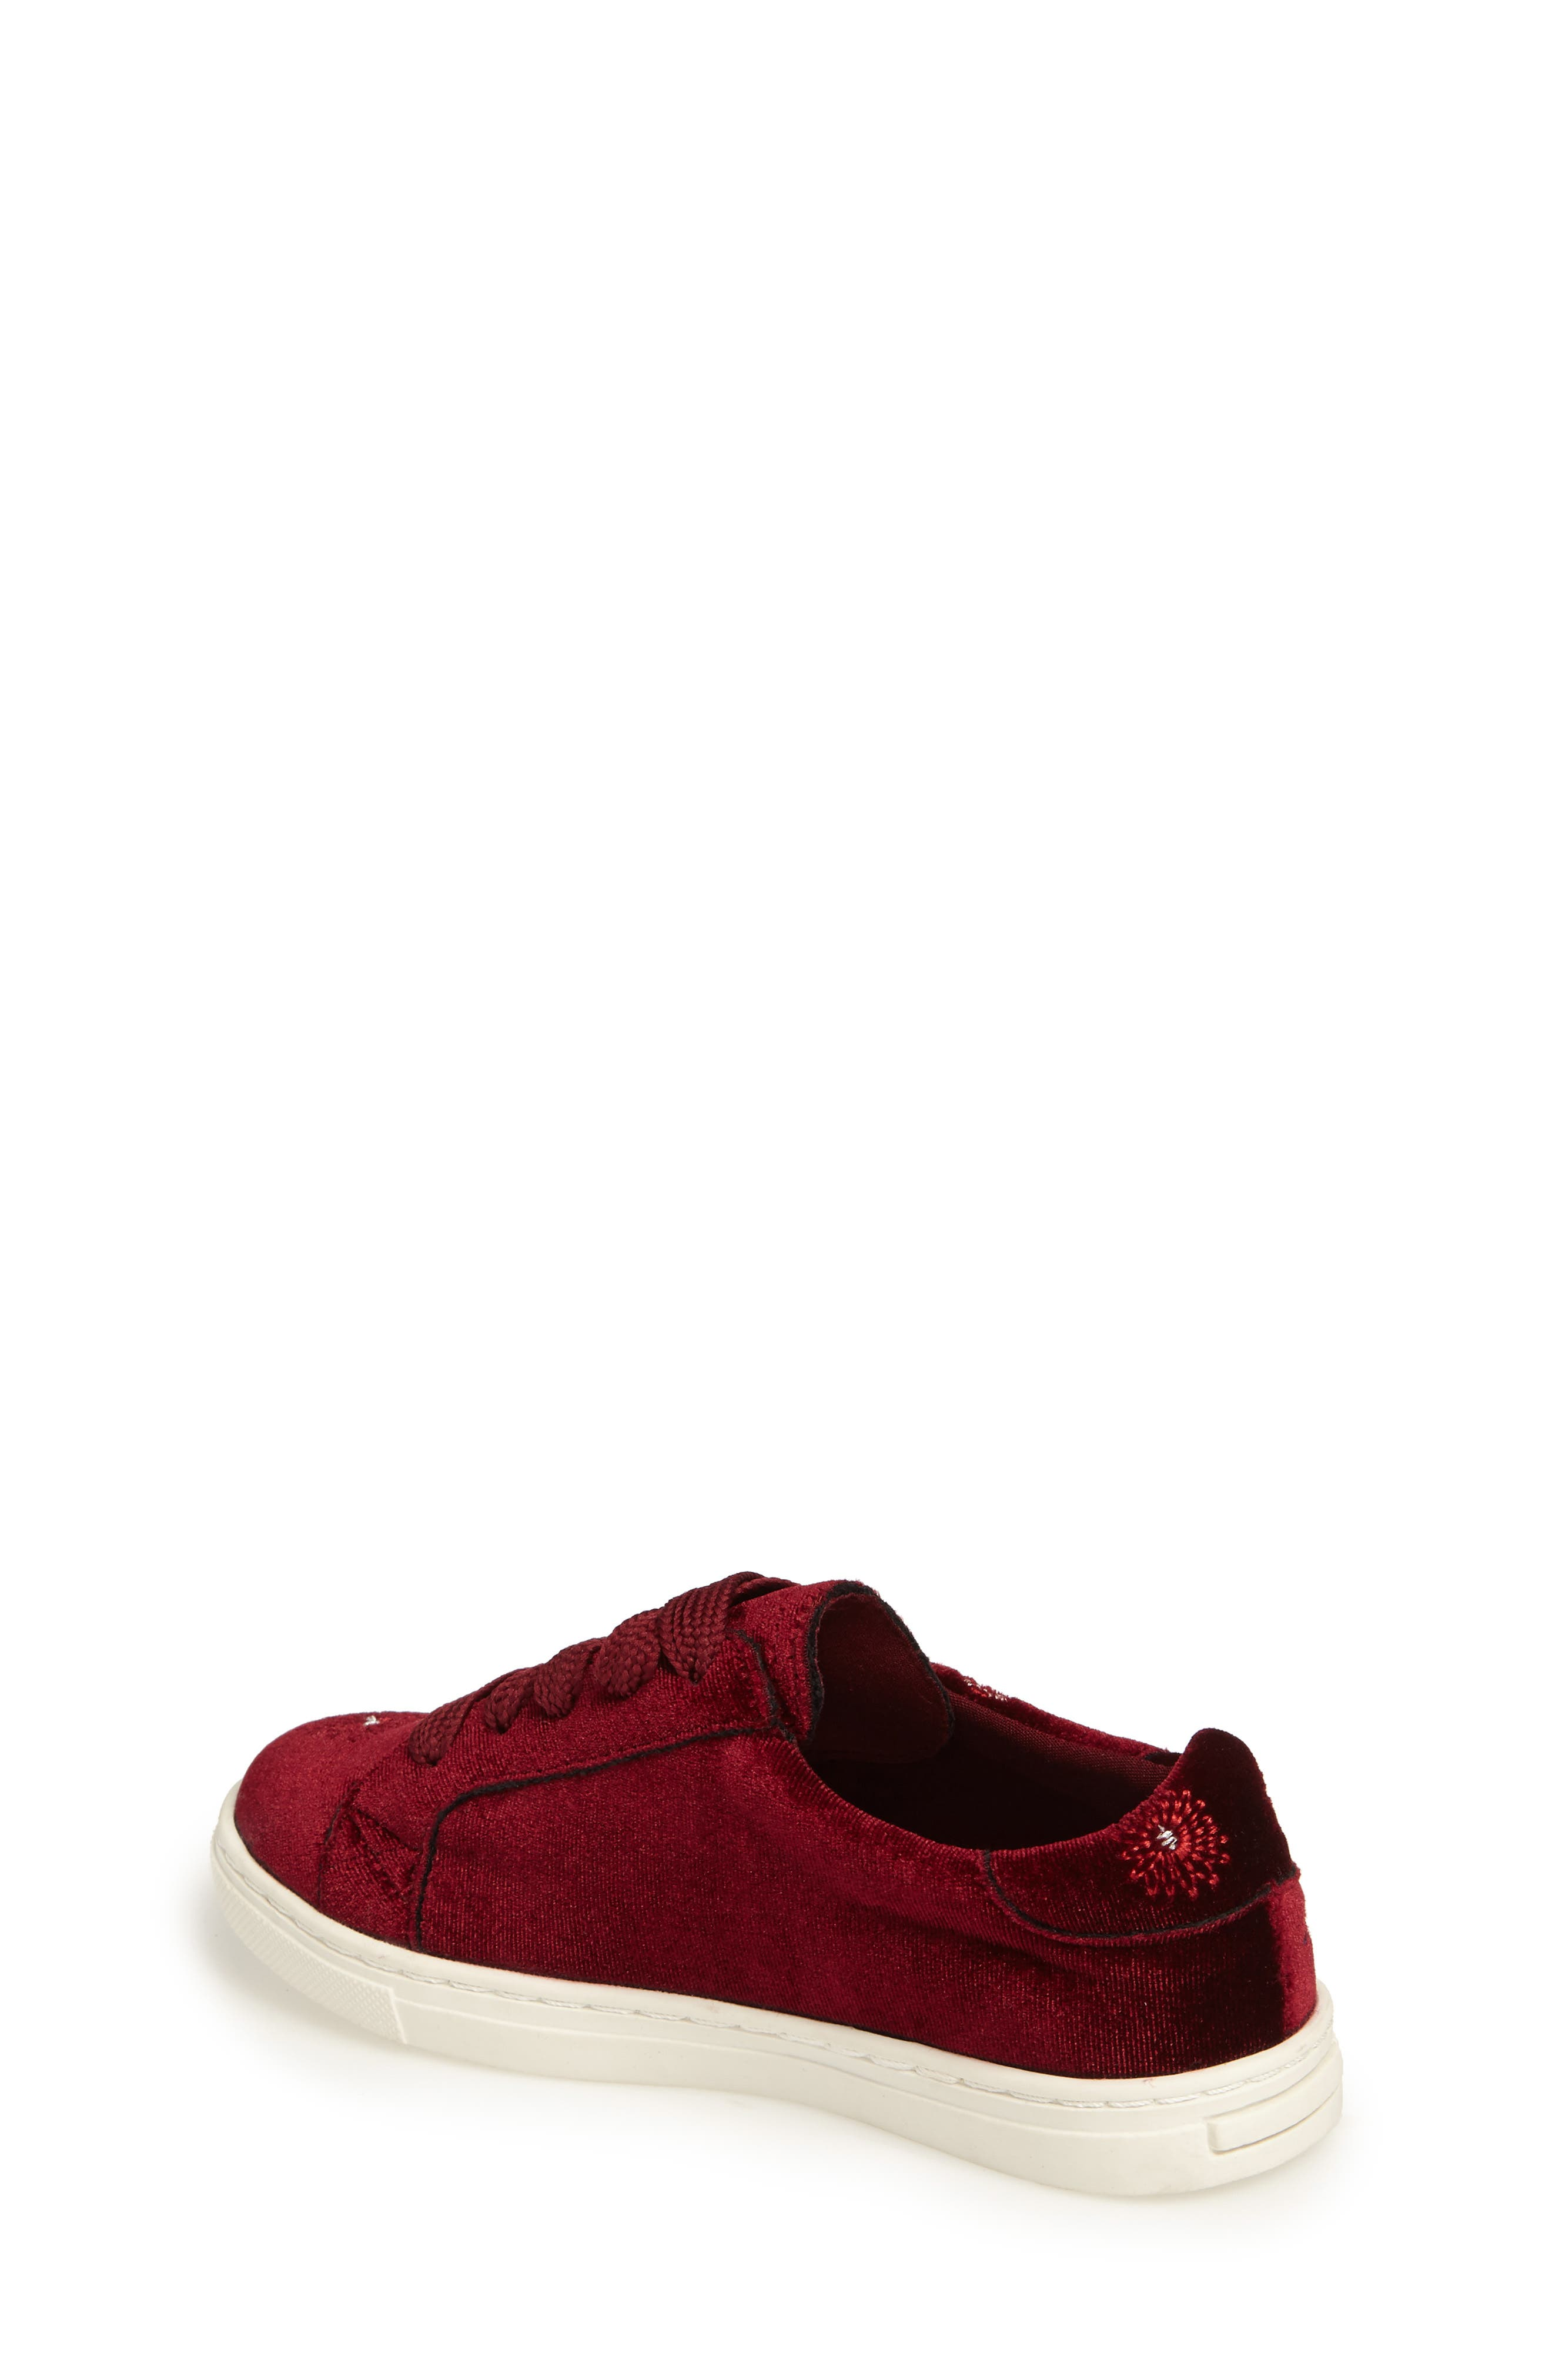 Zolly Floral Embroidered Sneaker,                             Alternate thumbnail 2, color,                             602